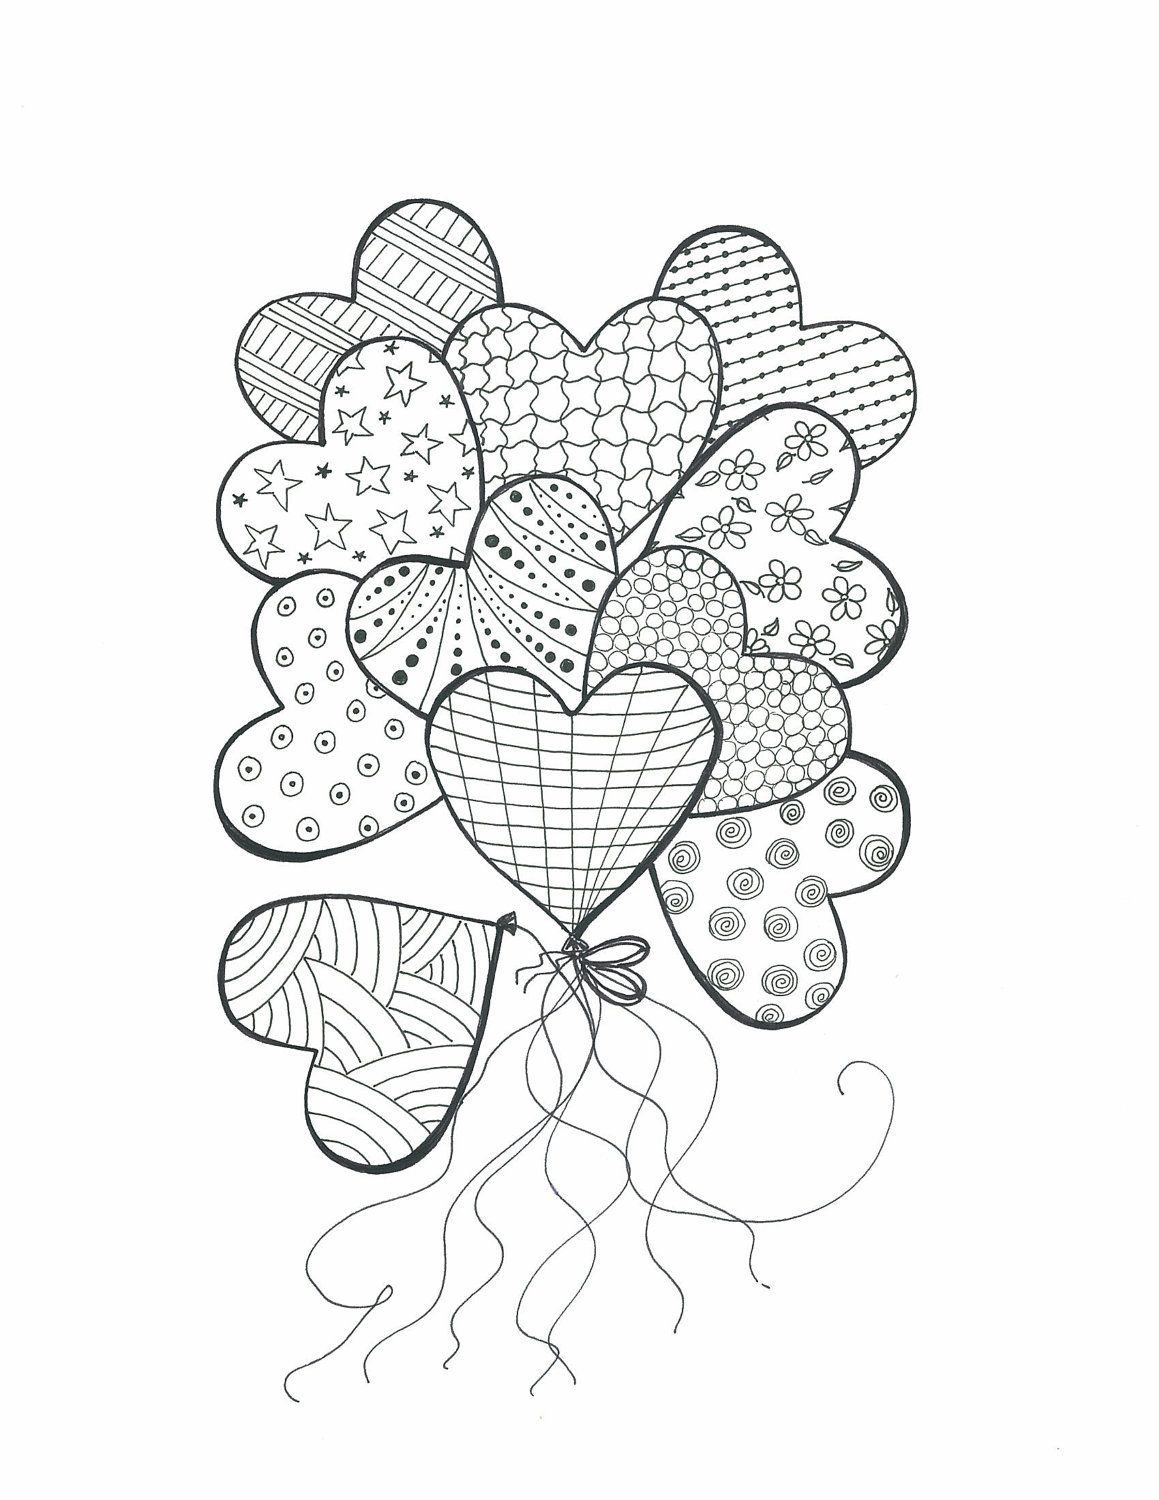 Pin By Gulsah Tastekin On Heart Art Heart Coloring Pages Heart Doodle Coloring Pages